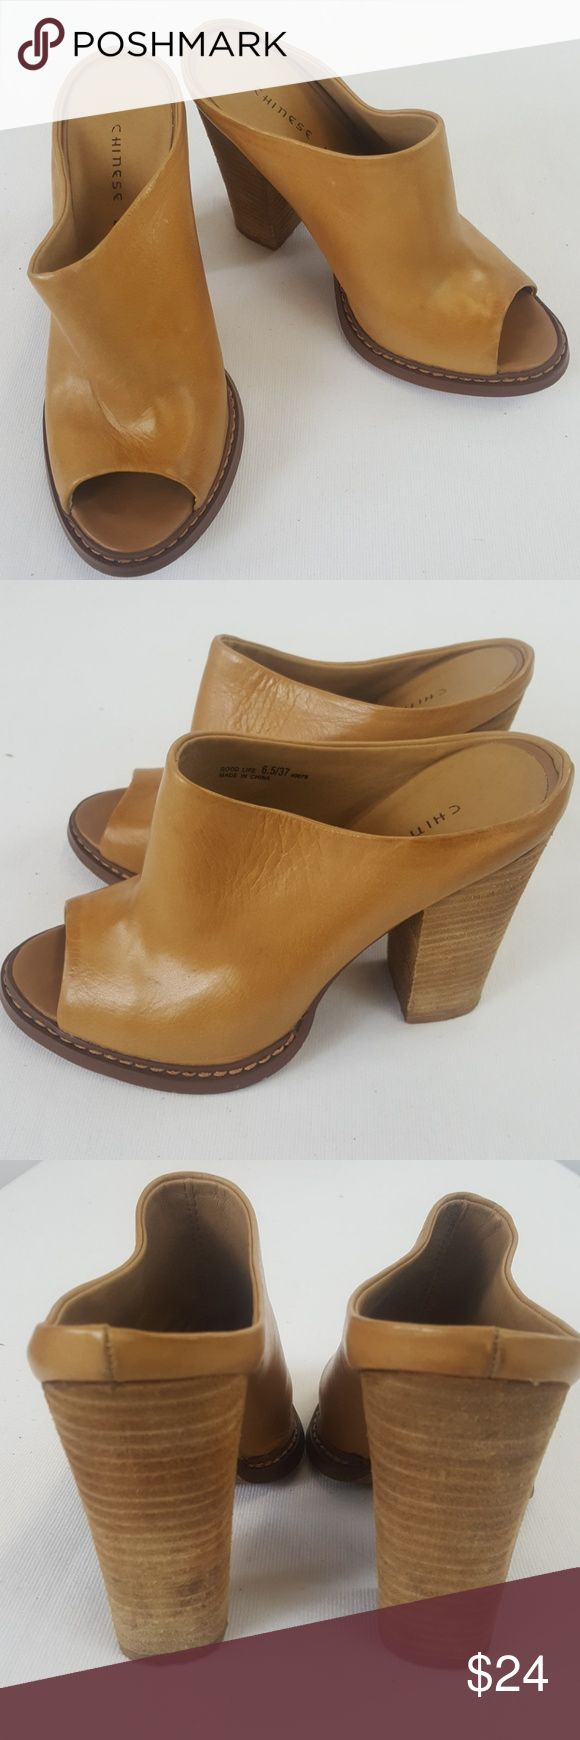 "Chinese Laundry brown wood open toe heels size 6.5 Chinese Laundry brown wood open toe heels.  Size 6.5 Heels 4"" Chinese Laundry Shoes Heels"